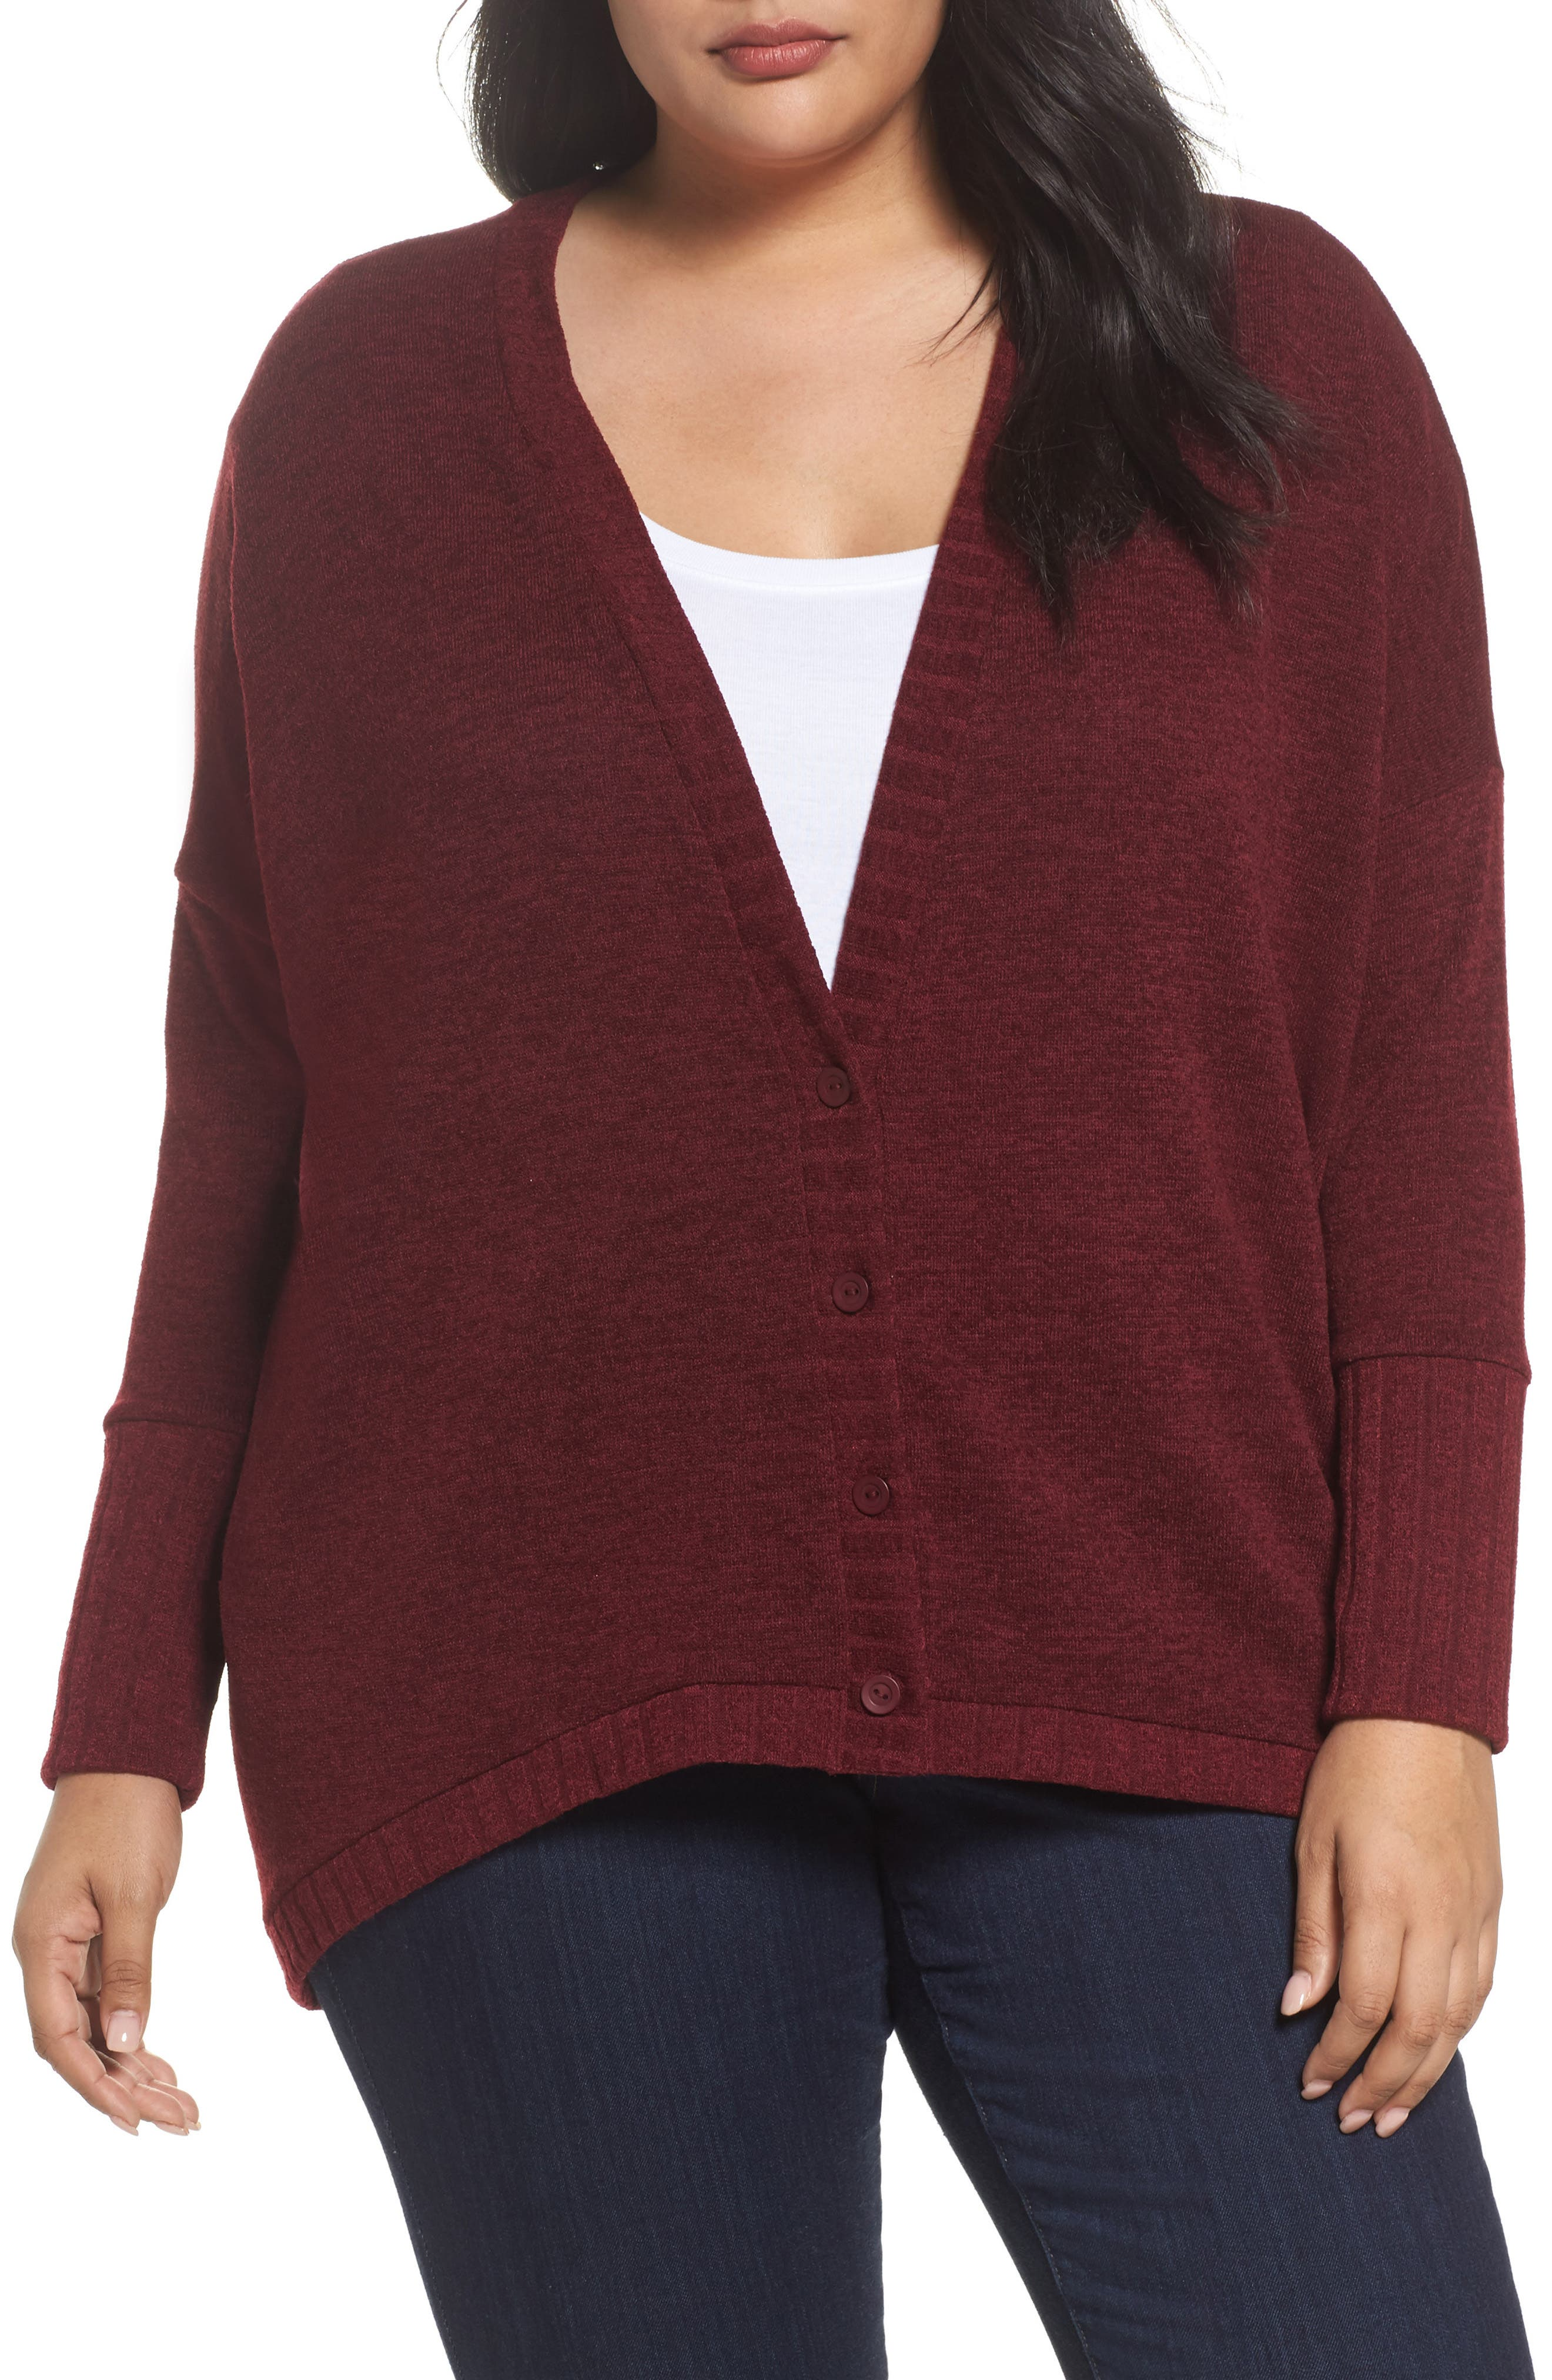 Hacci High/Low Cardigan,                         Main,                         color, Red Tannin